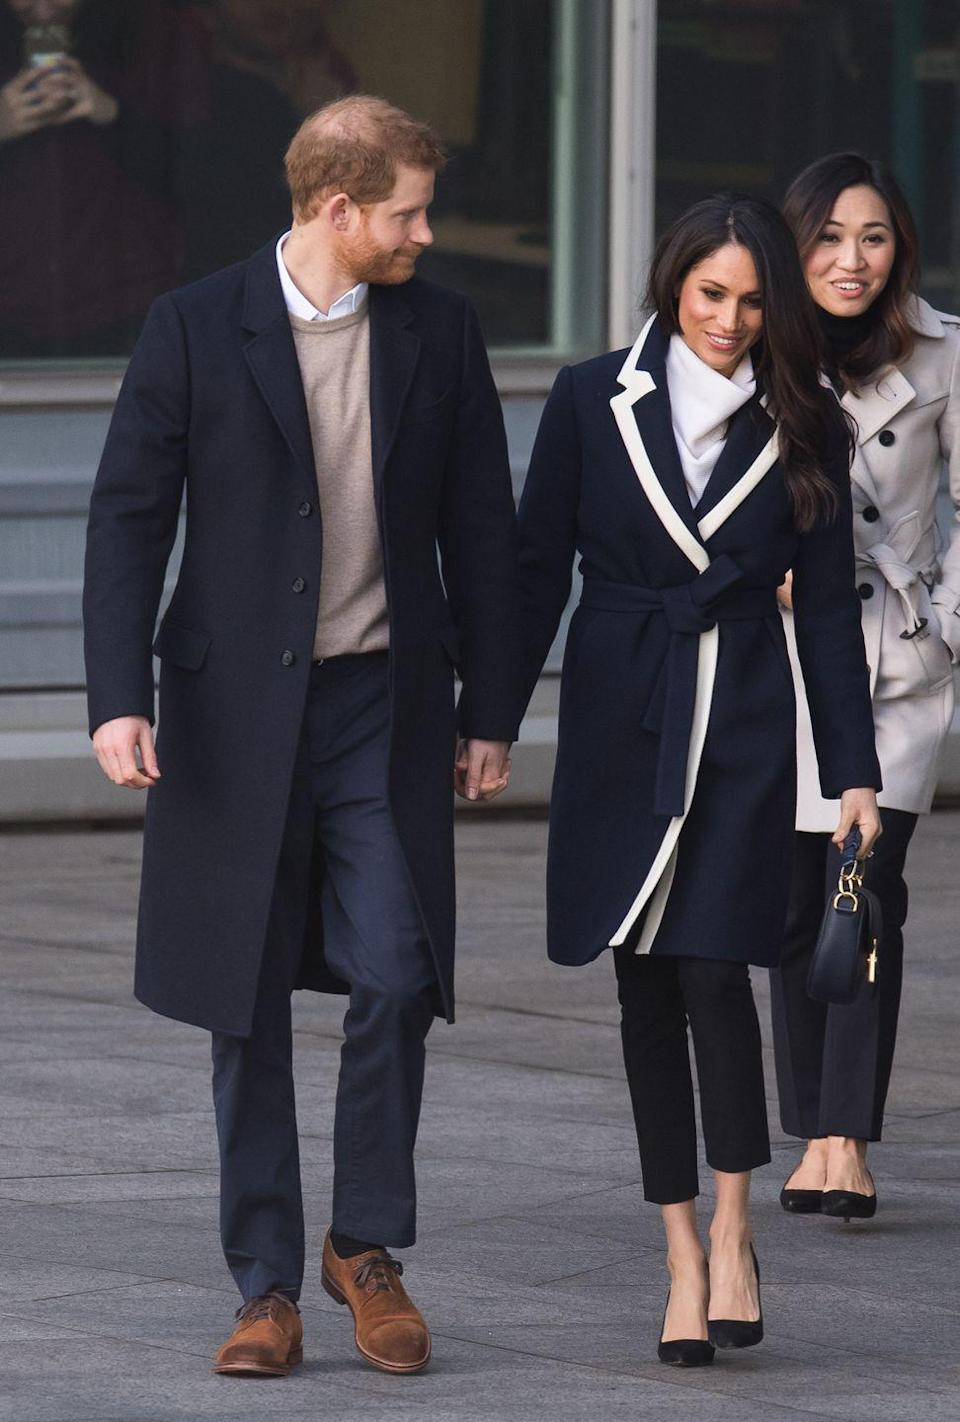 "<p><a href=""https://www.townandcountrymag.com/style/fashion-trends/a19175189/meghan-markle-jcrew-coat/"" rel=""nofollow noopener"" target=""_blank"" data-ylk=""slk:Meghan wore a chic J.Crew coat for the occasion."" class=""link rapid-noclick-resp"">Meghan wore a chic J.Crew coat for the occasion.</a></p>"